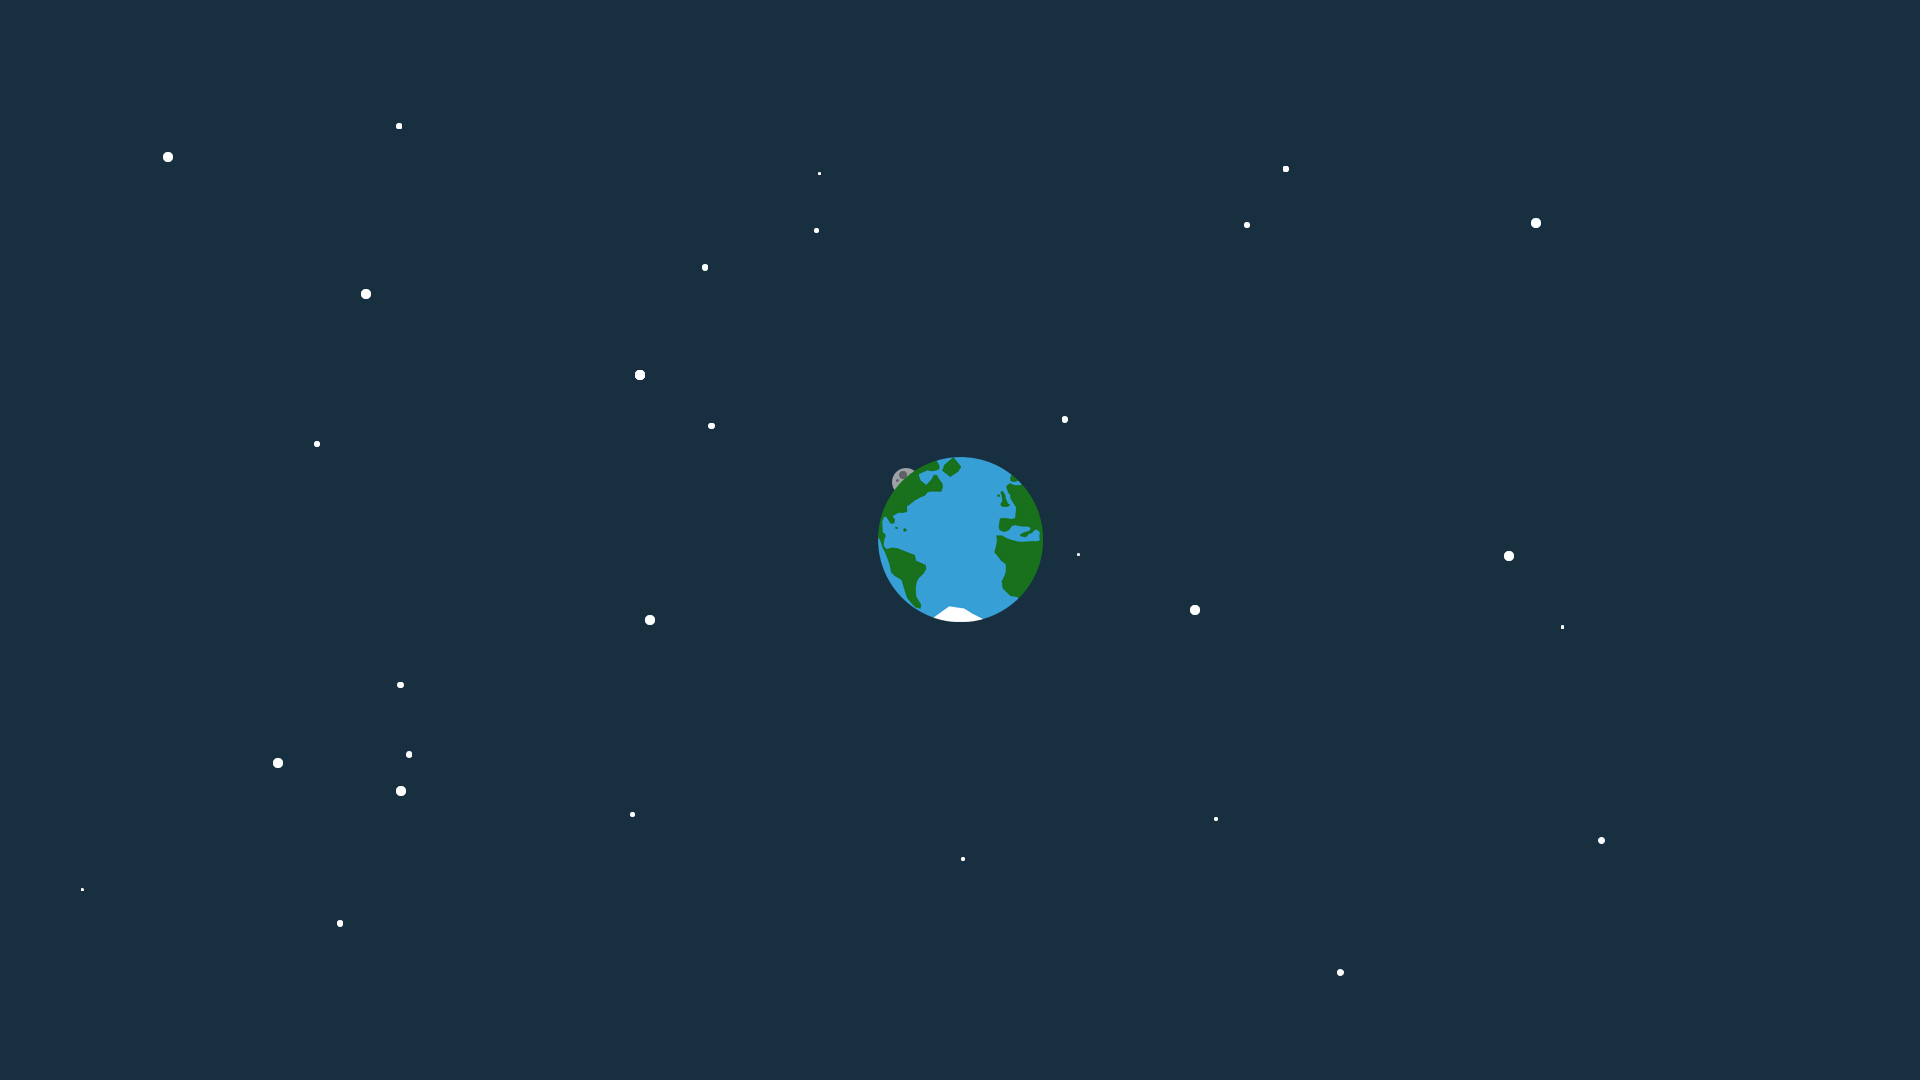 Space Minimalism Hd Hd Artist 4k Wallpapers Images